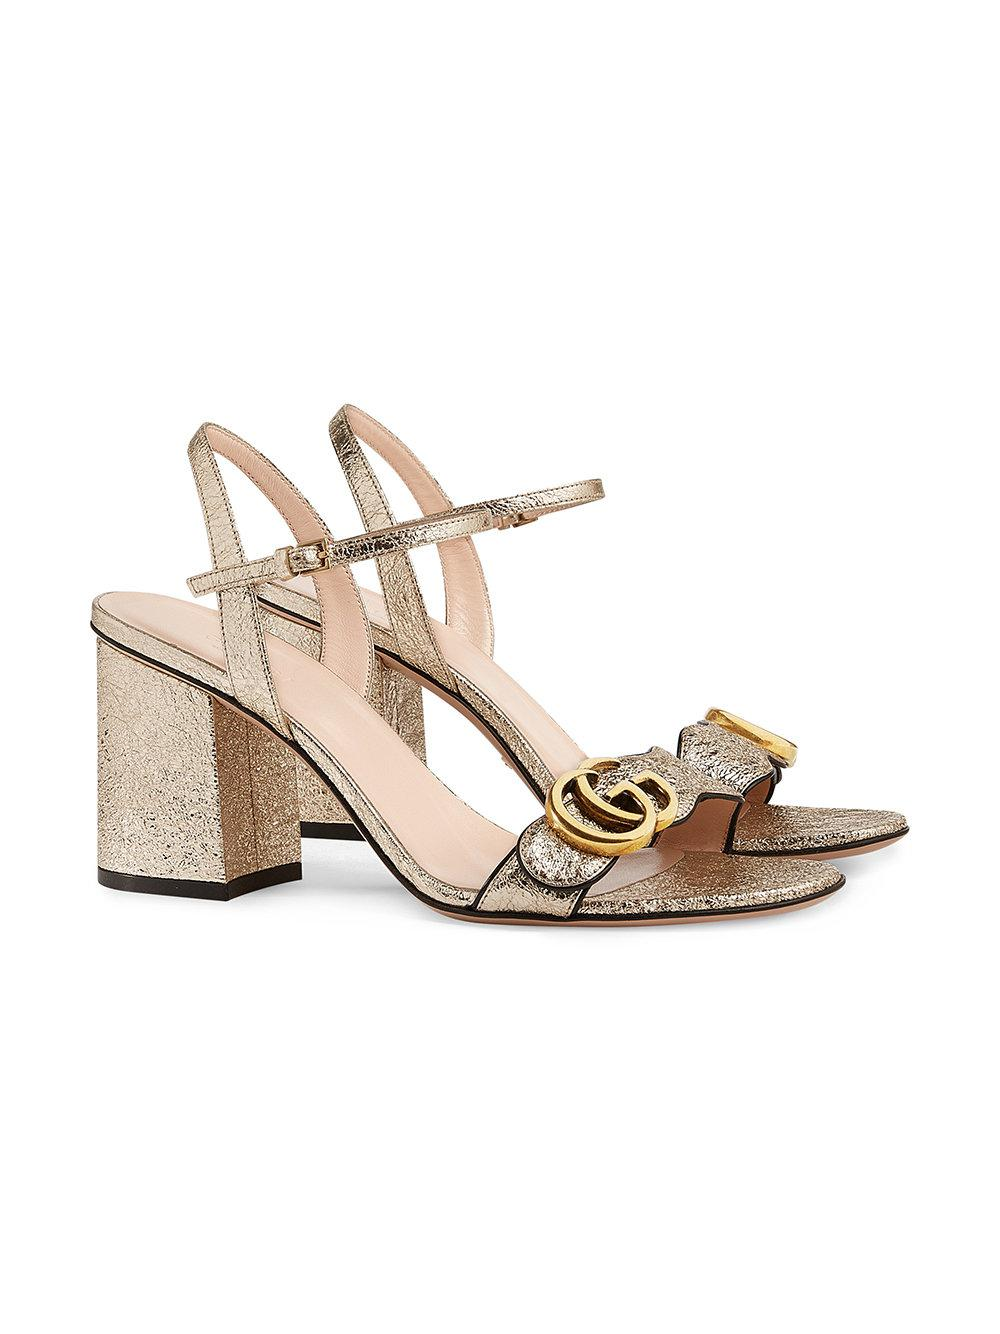 cdd8fb1d556 Lyst - Gucci Metallic (grey) Laminate Leather Mid-heel Sandal in ...